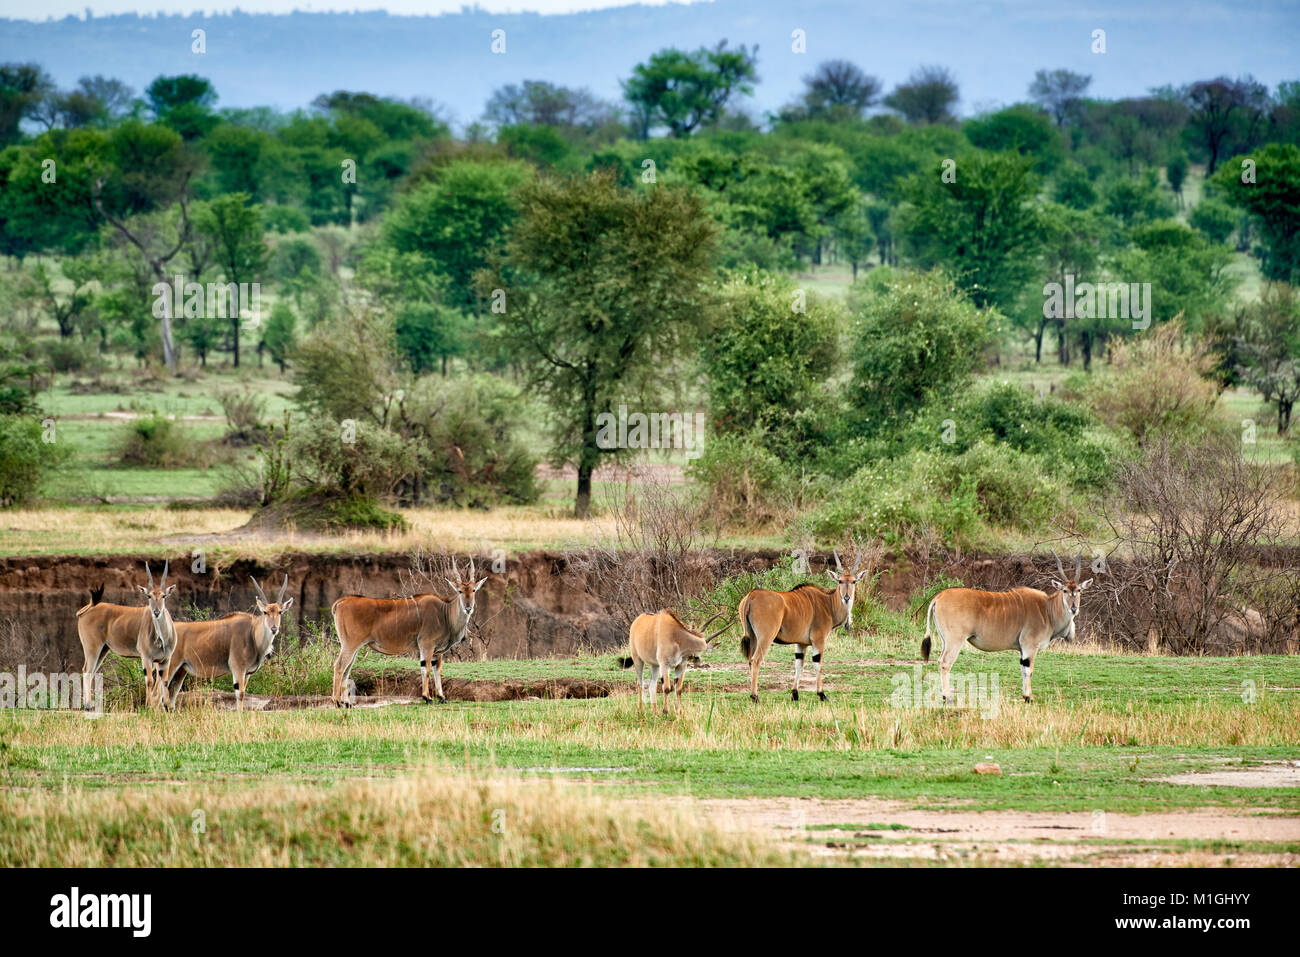 Common eland antelopes in landscape of Serengeti National Park, UNESCO world heritage site, Tanzania, Africa Stock Photo